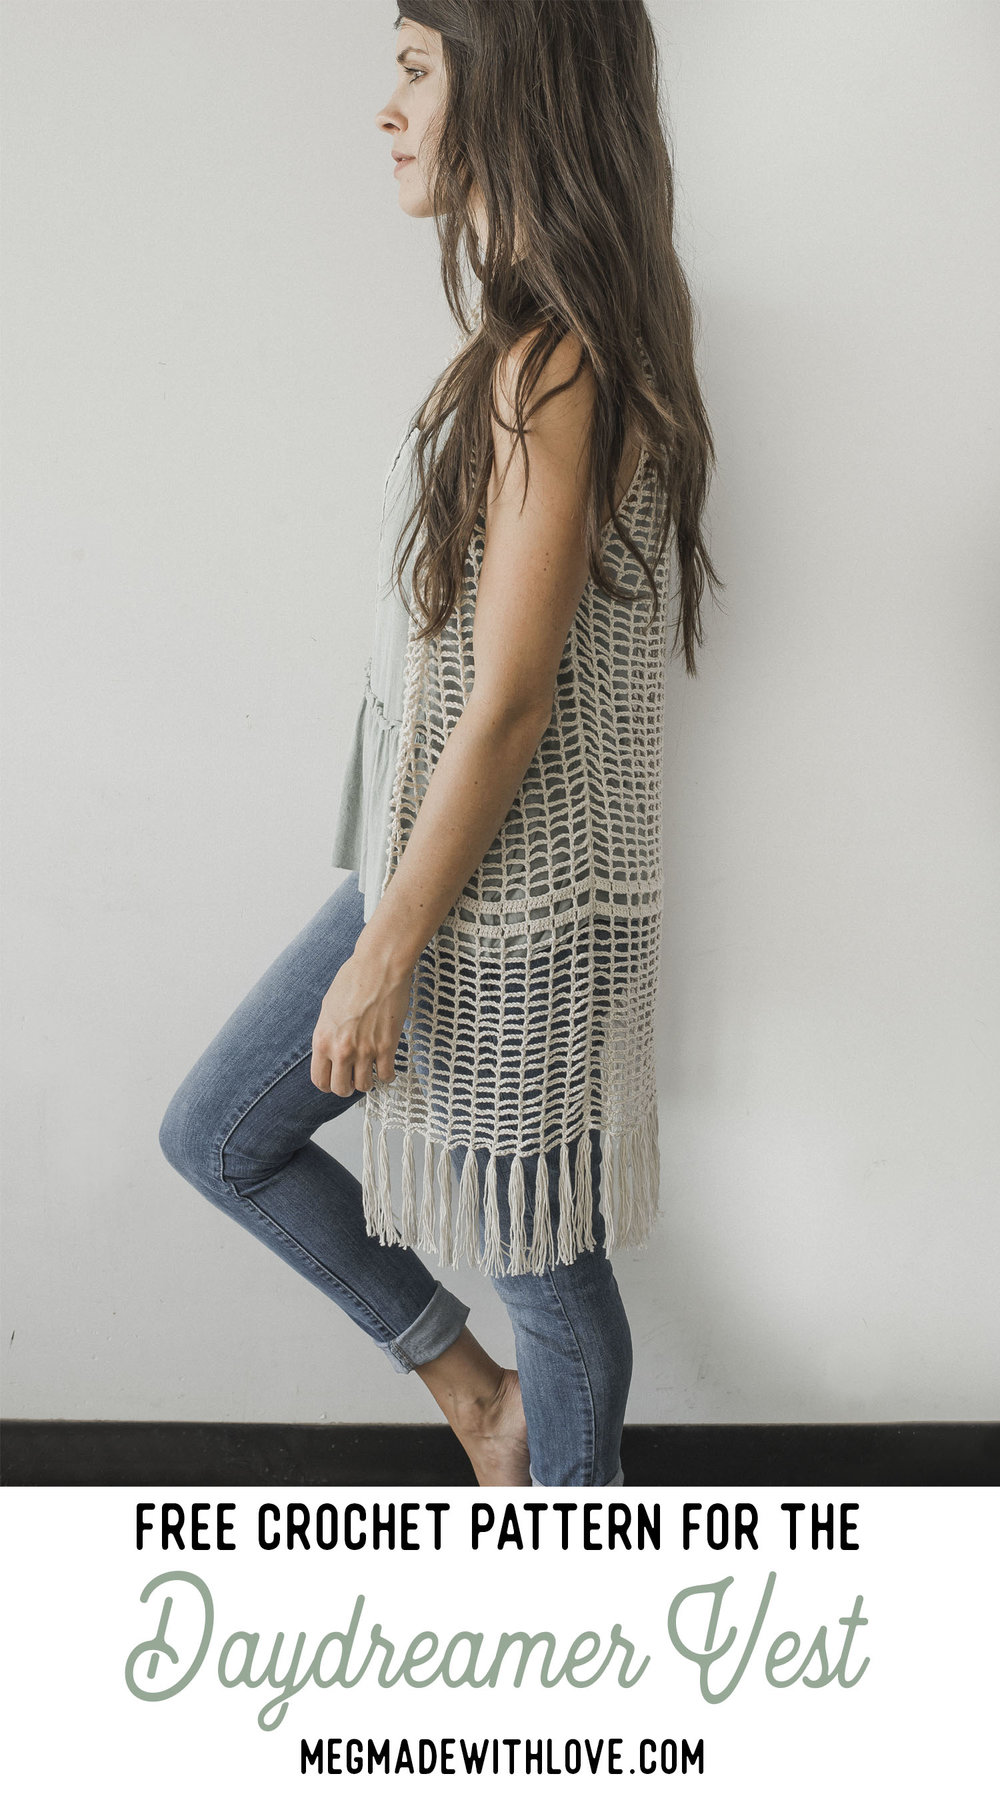 Free Crochet Pattern for the Daydreamer Crochet Vest - Megmade with Love